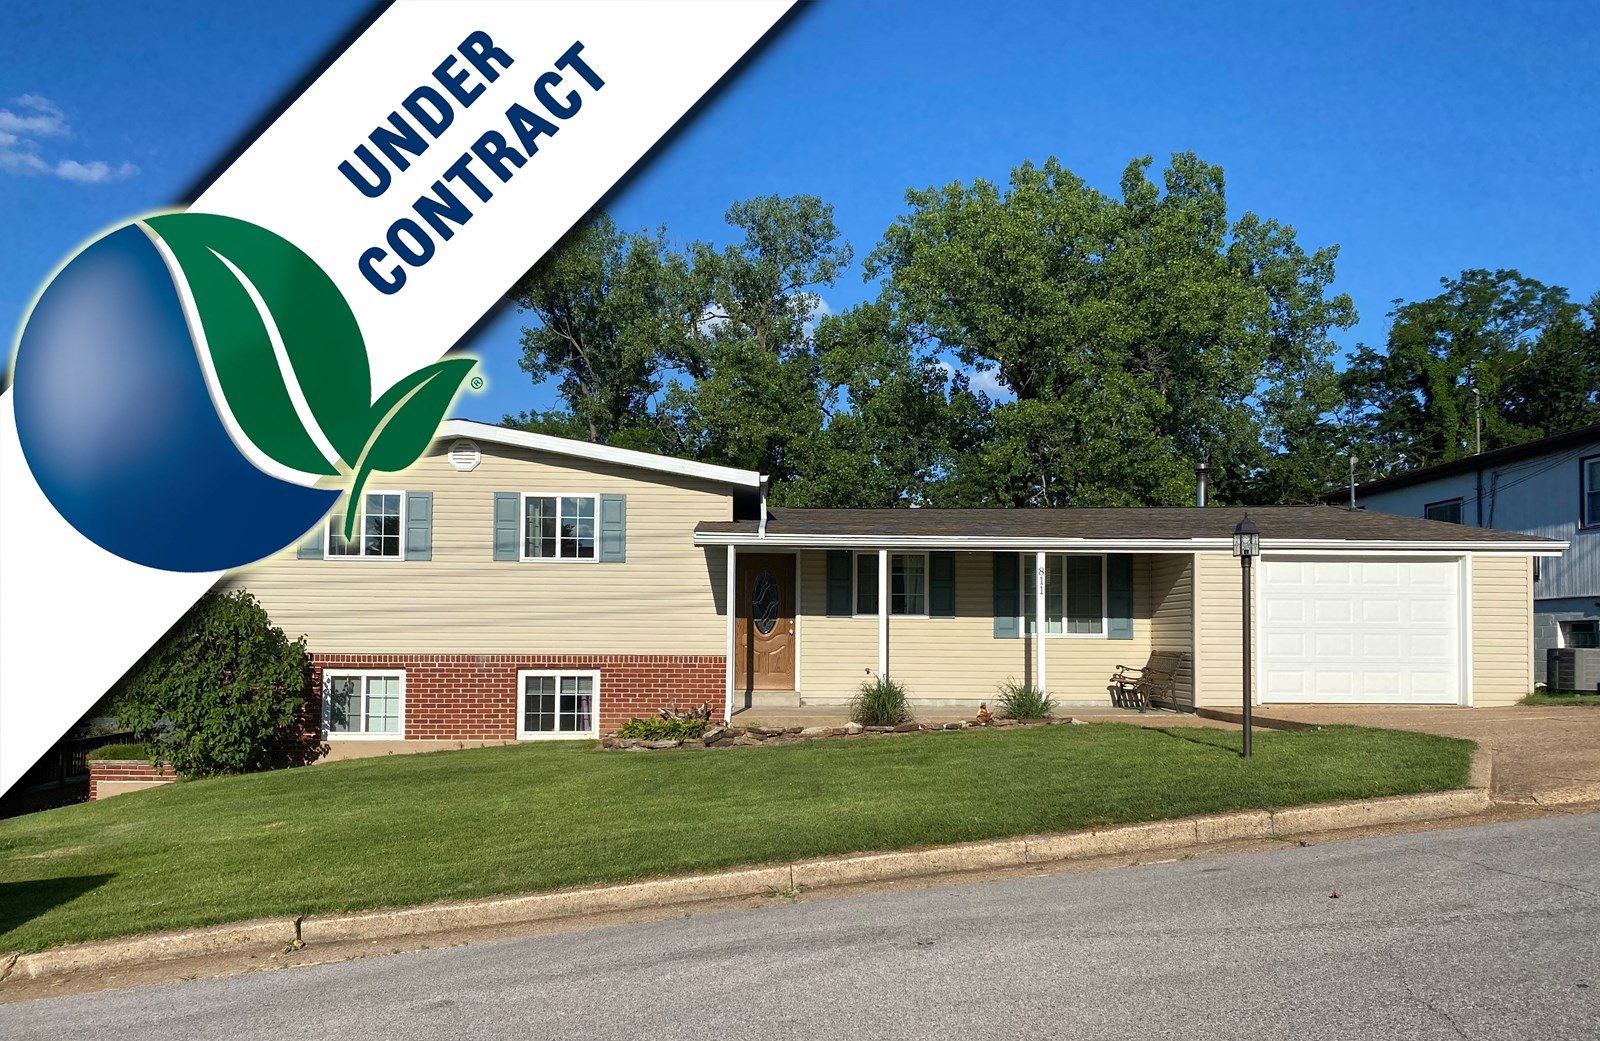 Spacious updated family home For Sale in Hermann, MO!